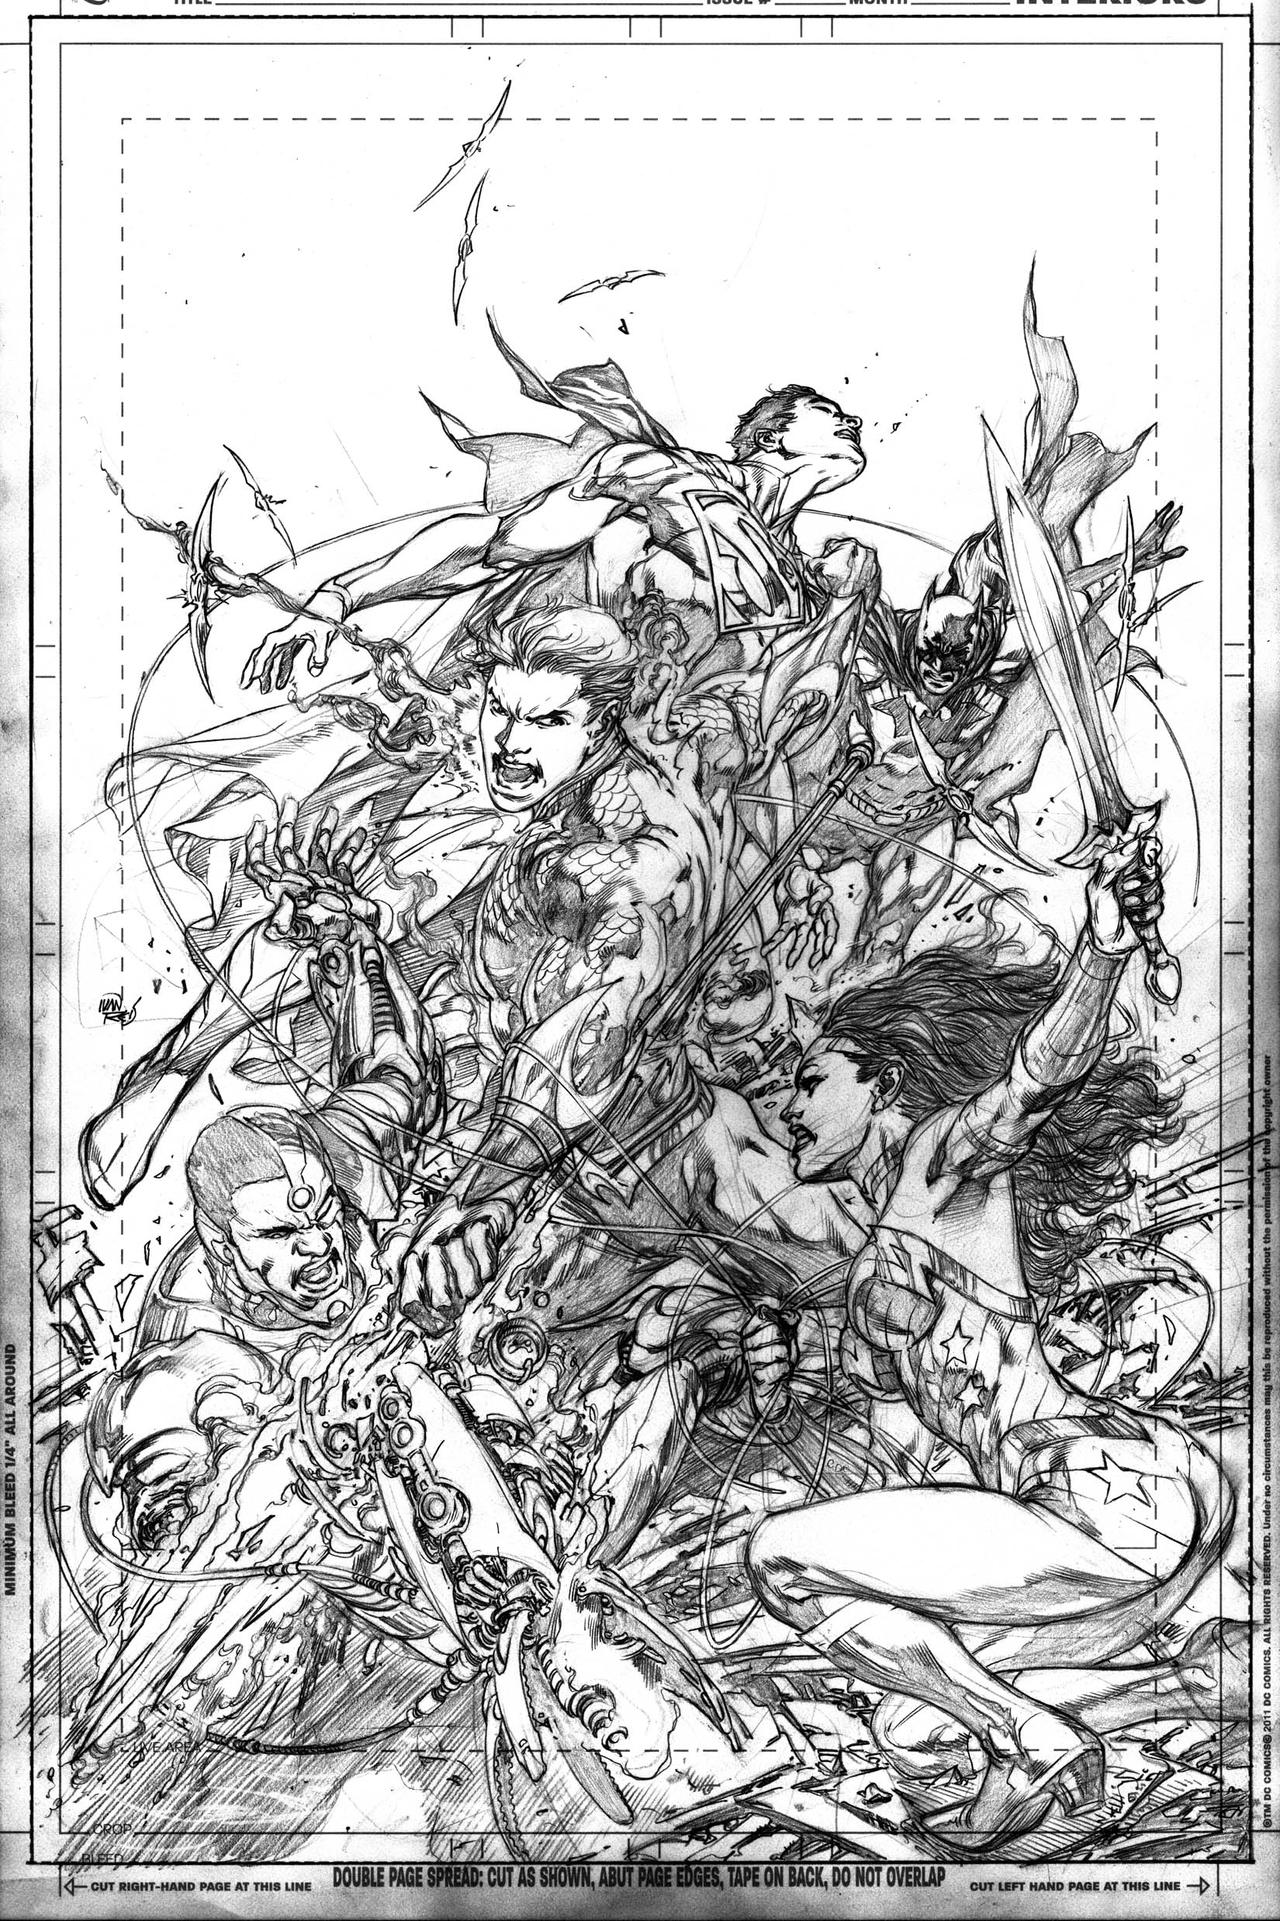 Justice League Issue 16 by IvanReisDC